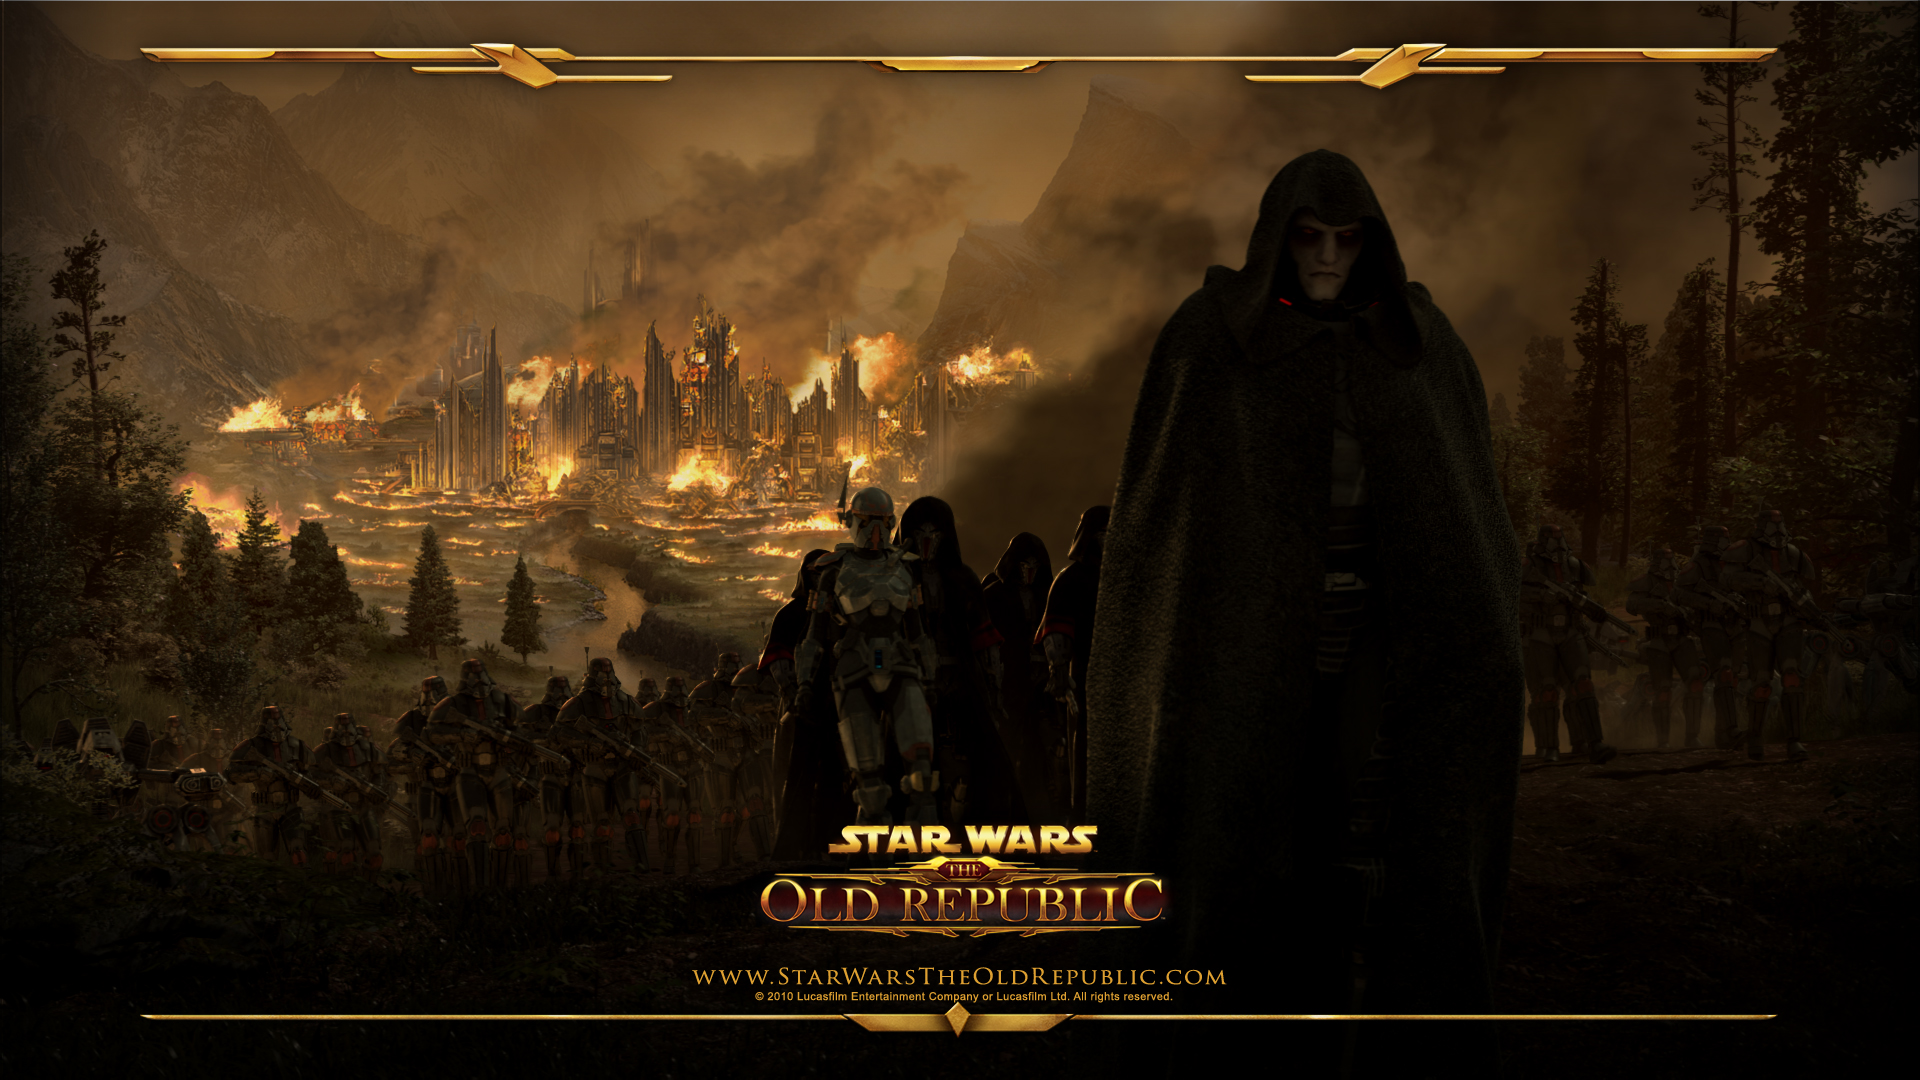 Swtor Wallpapers Star Wars The Old Republig Blog Fansite 1920x1080